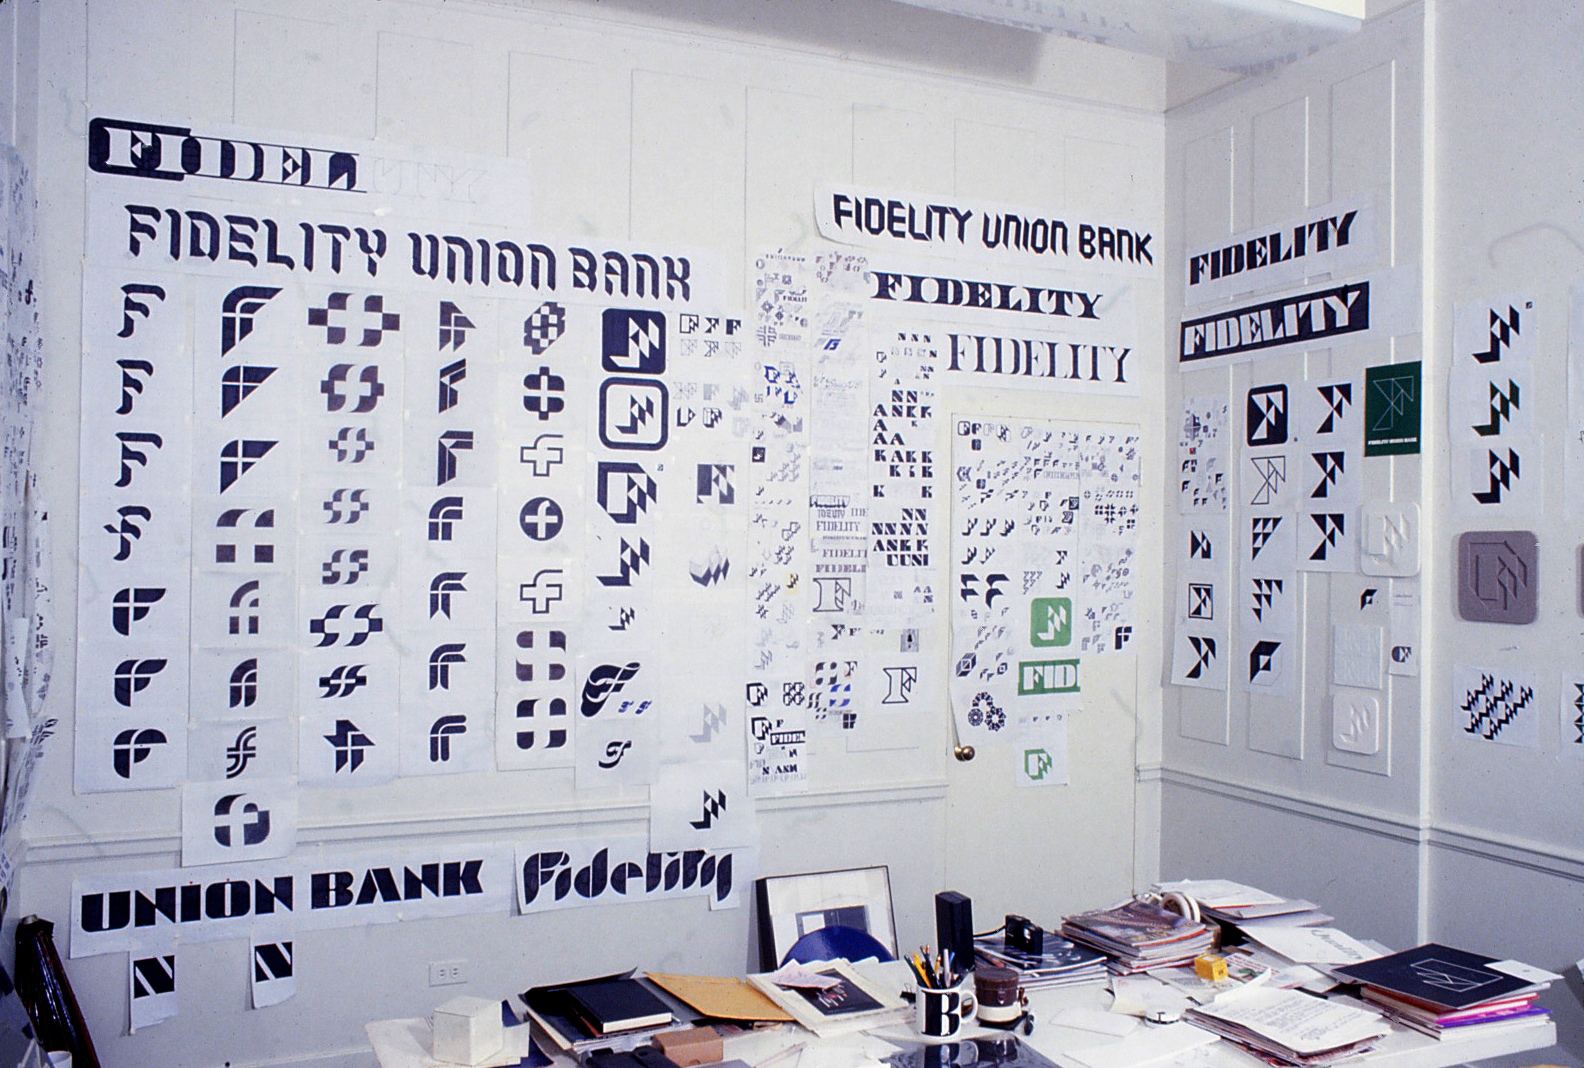 Photo of the office desk of Bill Cannan office desk at 2112 Broadway in New York City surrounded with dozens of hand drawn          design development drawings for the Fidelity logo and typeface illustrating the painstaking process of trial and error          that led to the finished products in the days before computer graphics.